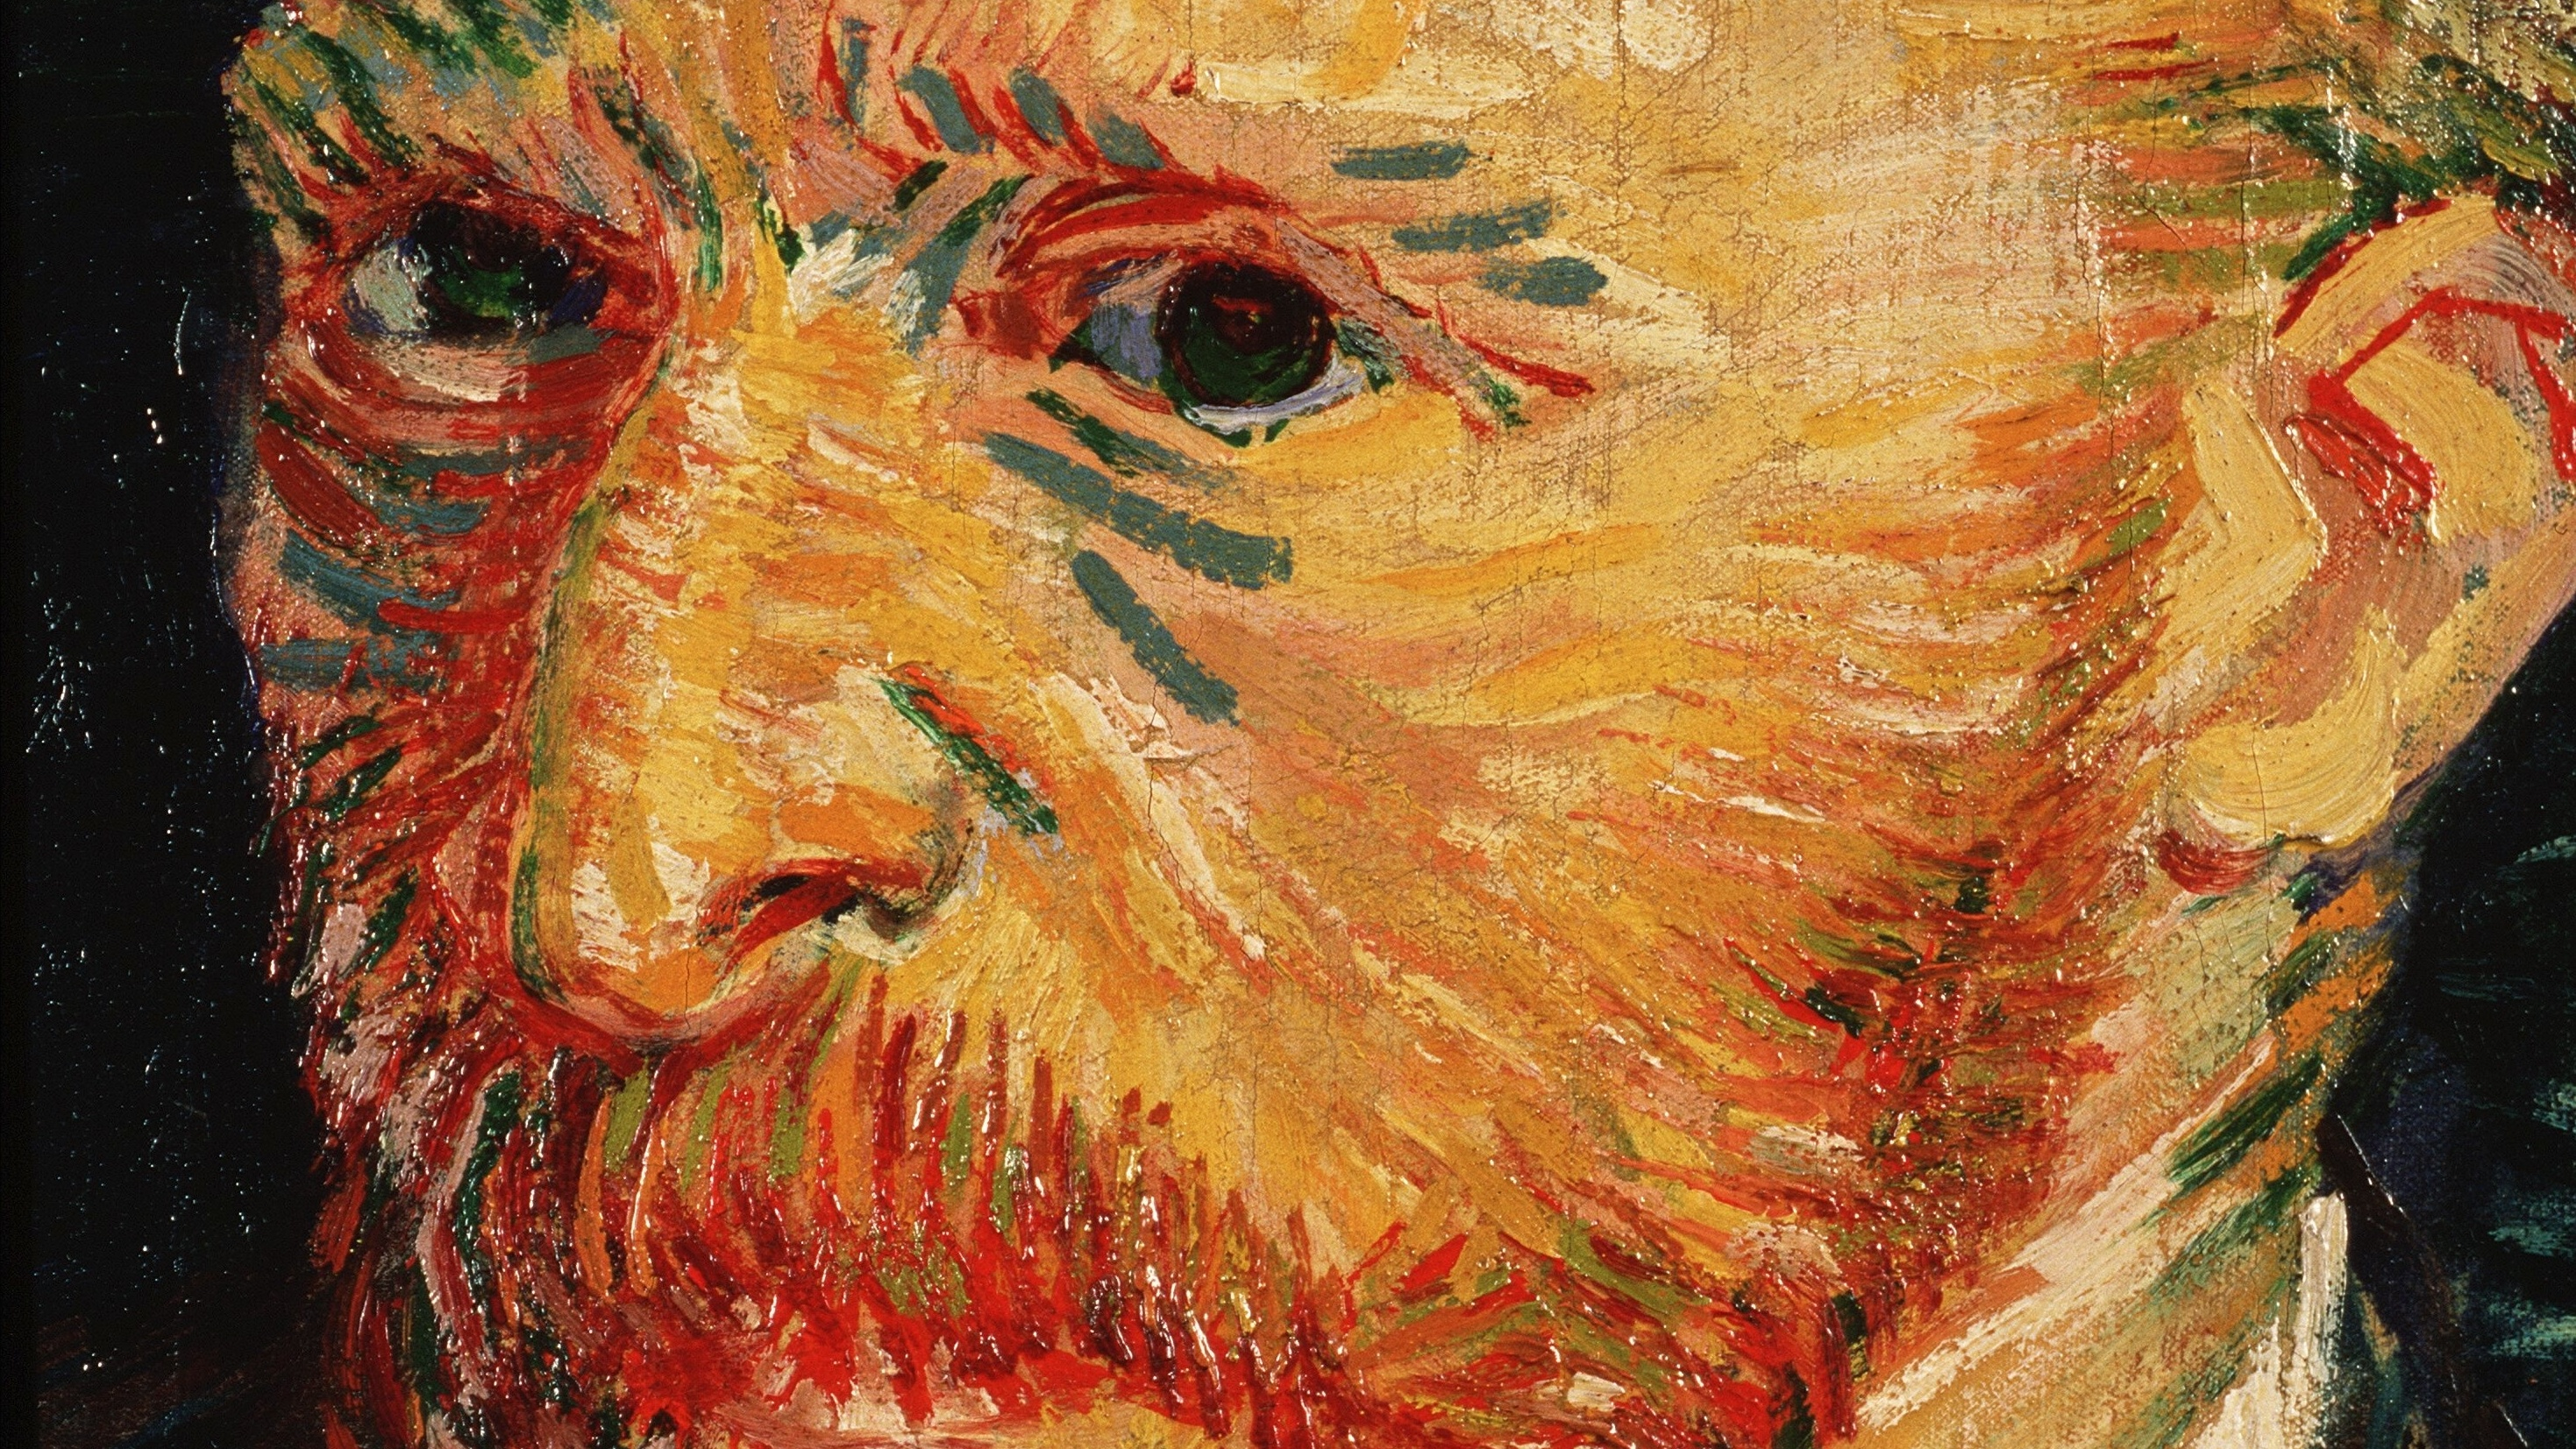 An 1887 self-portrait by artist Vincent van Gogh from the Musée d'Orsay in Paris. Another van Gogh painting.